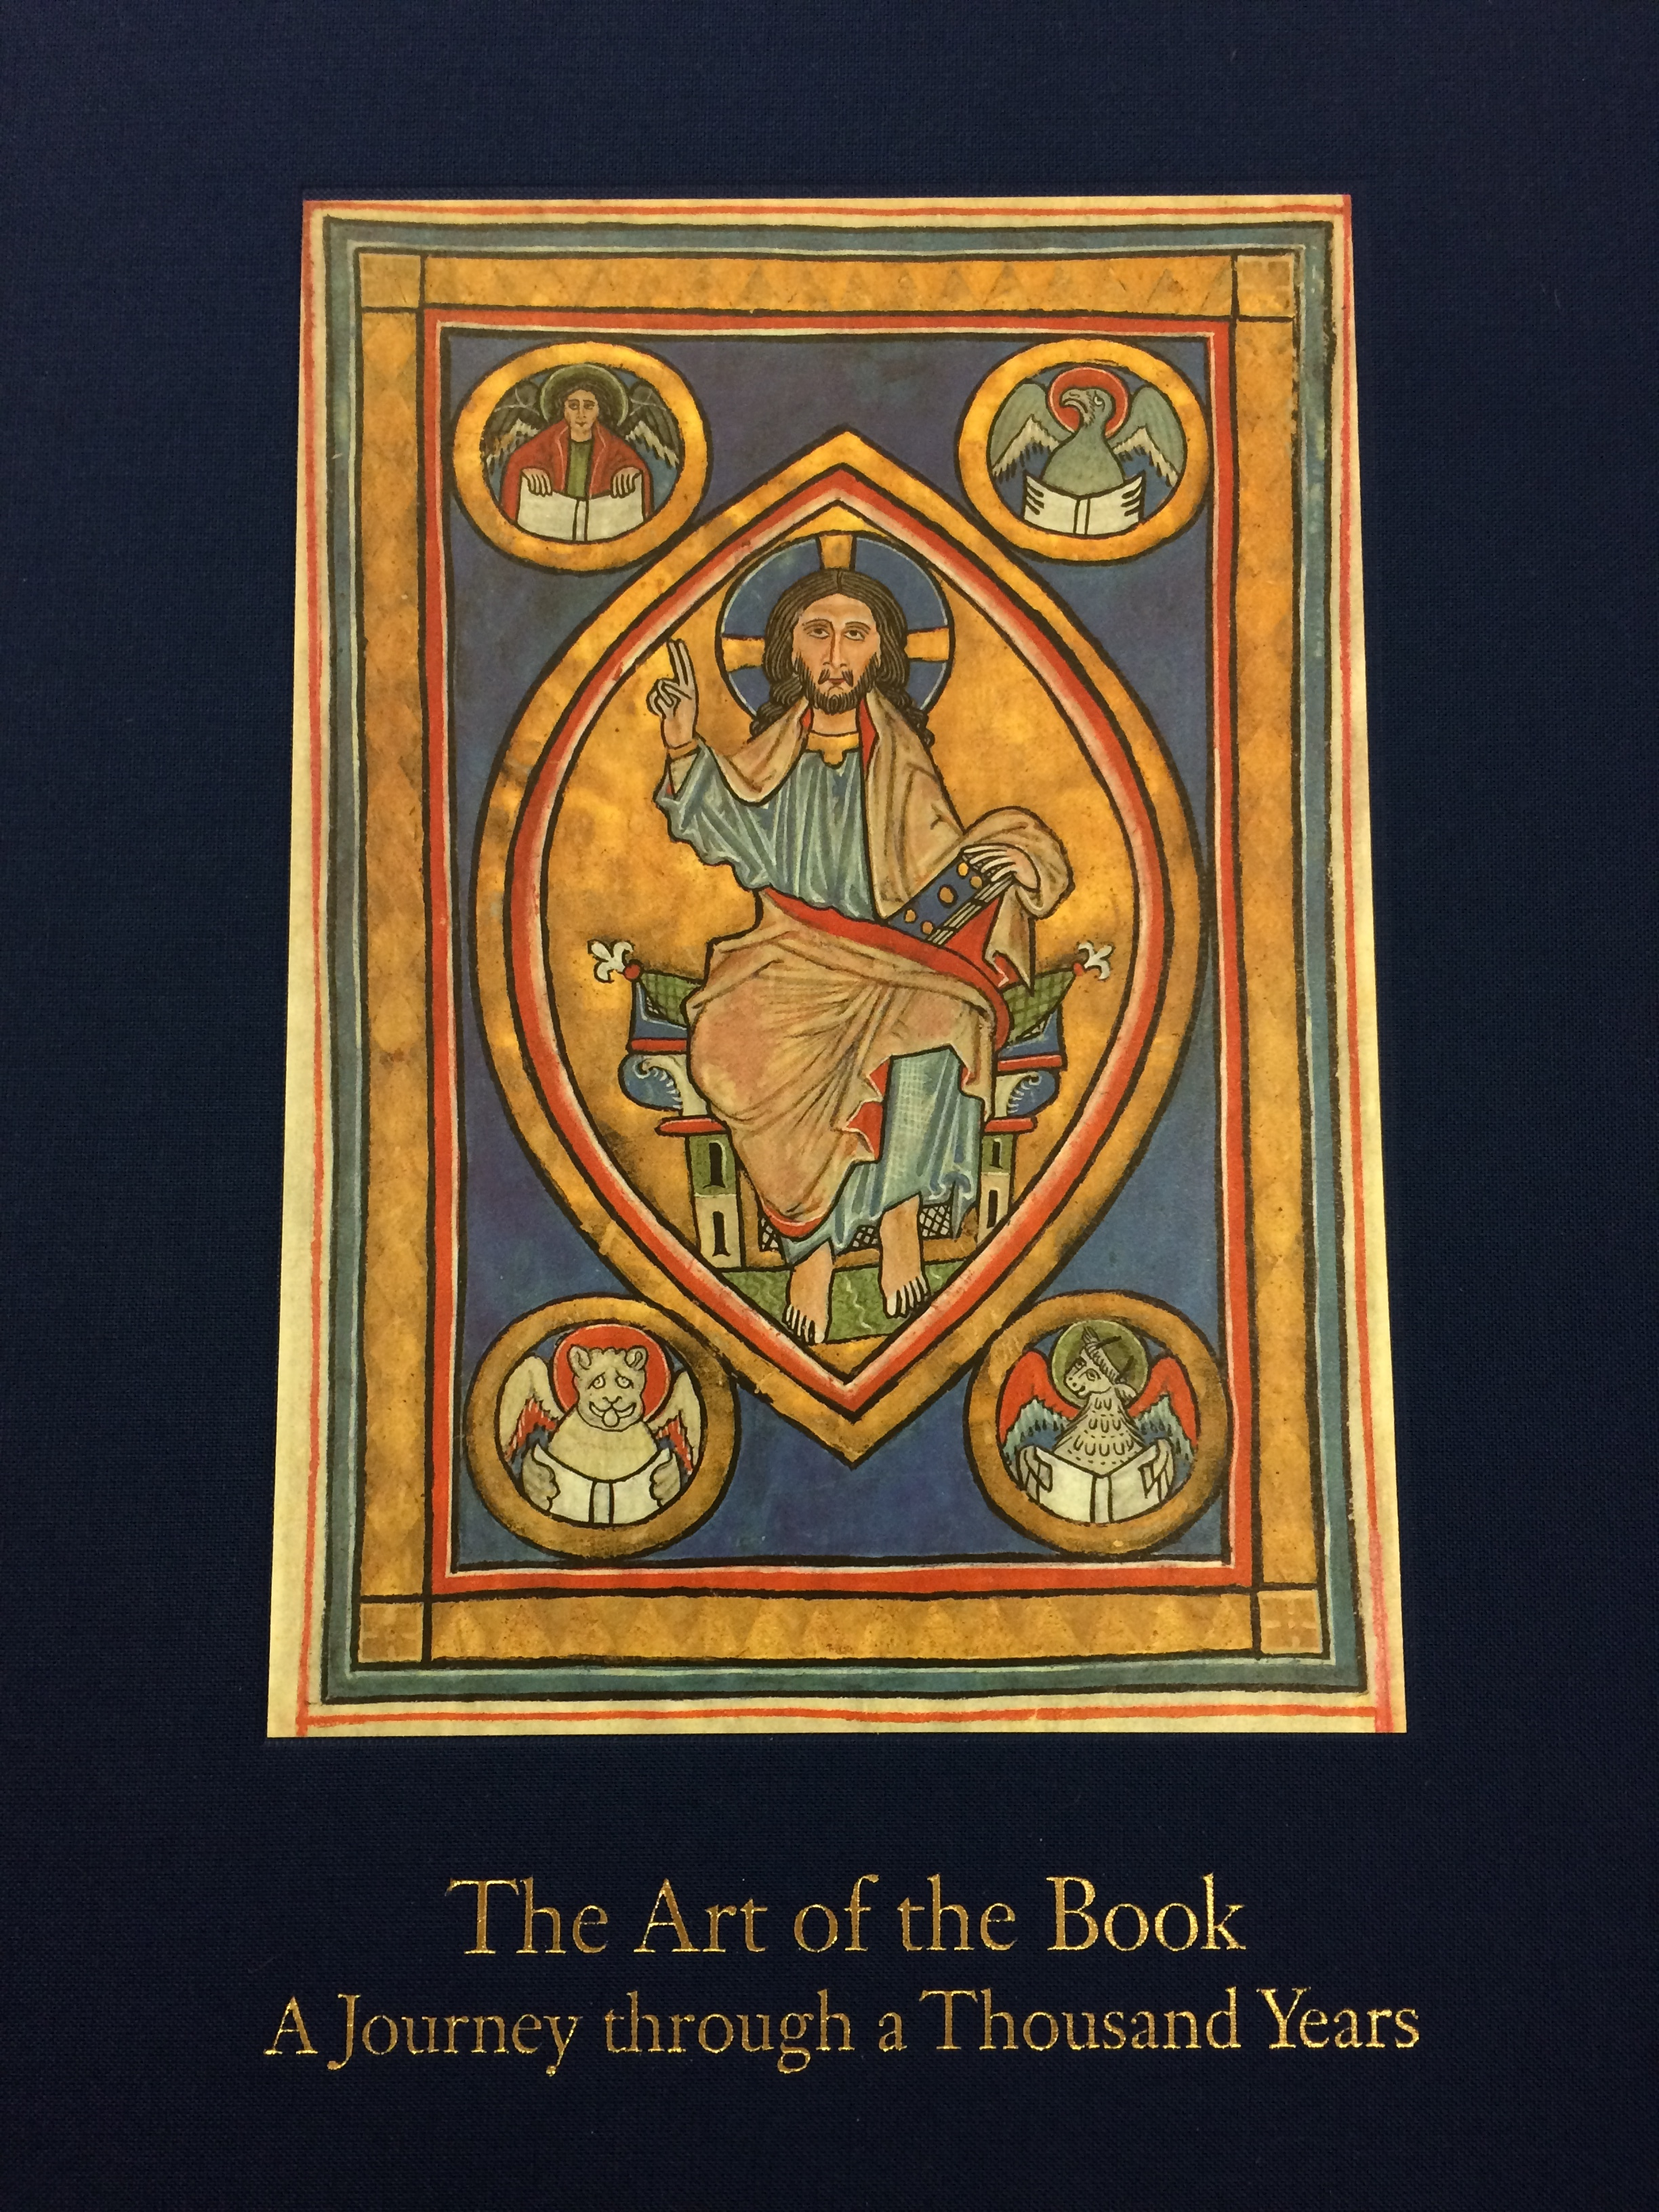 The Art of the Book- A Journey through a Thousand Years